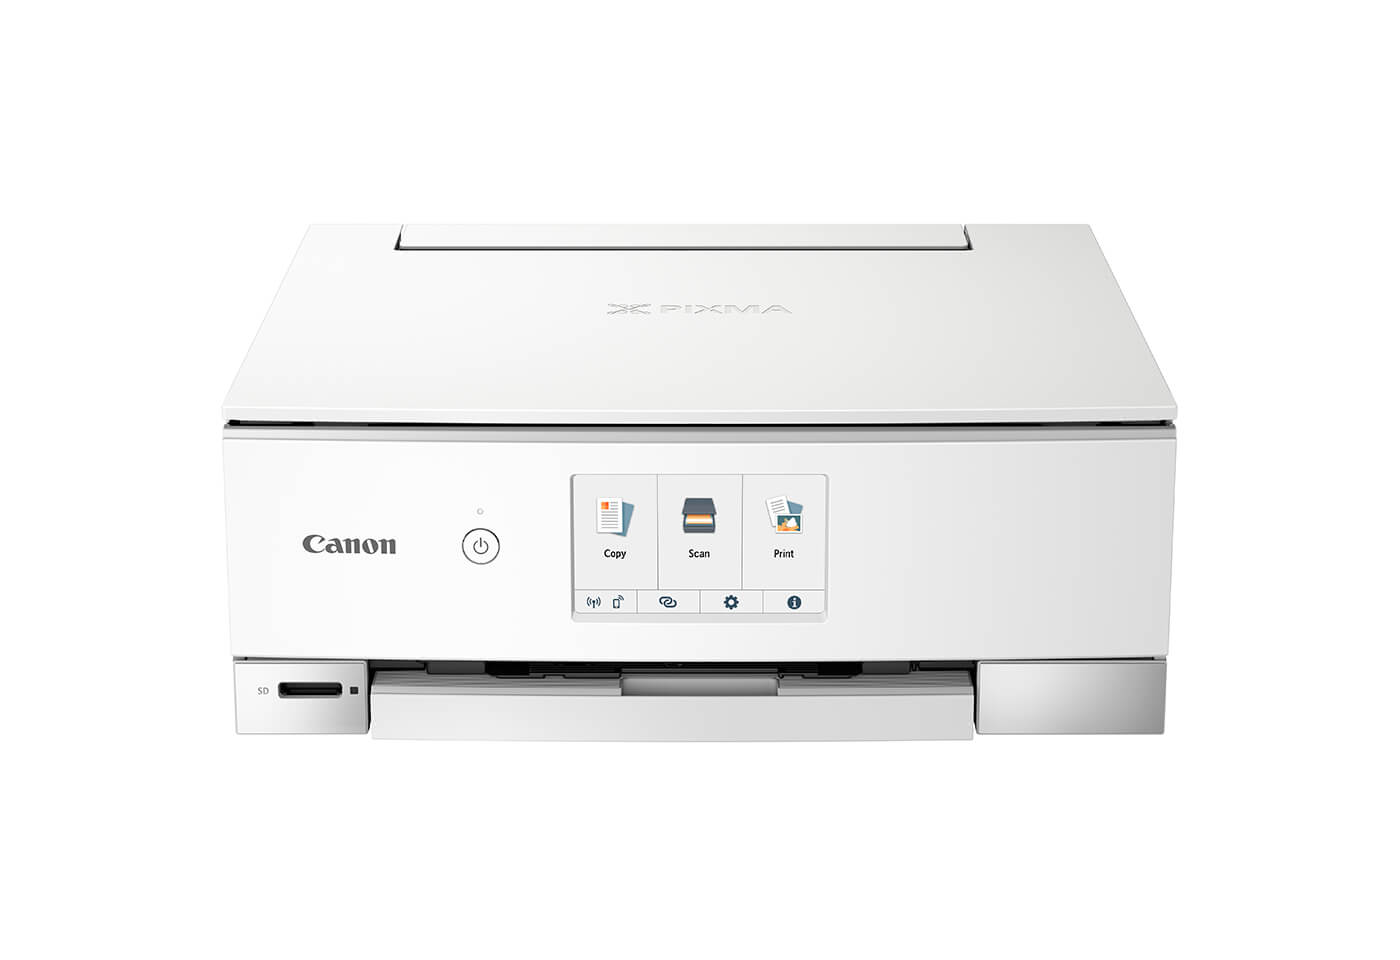 Product image of PIXMA HOME TS8260 in white